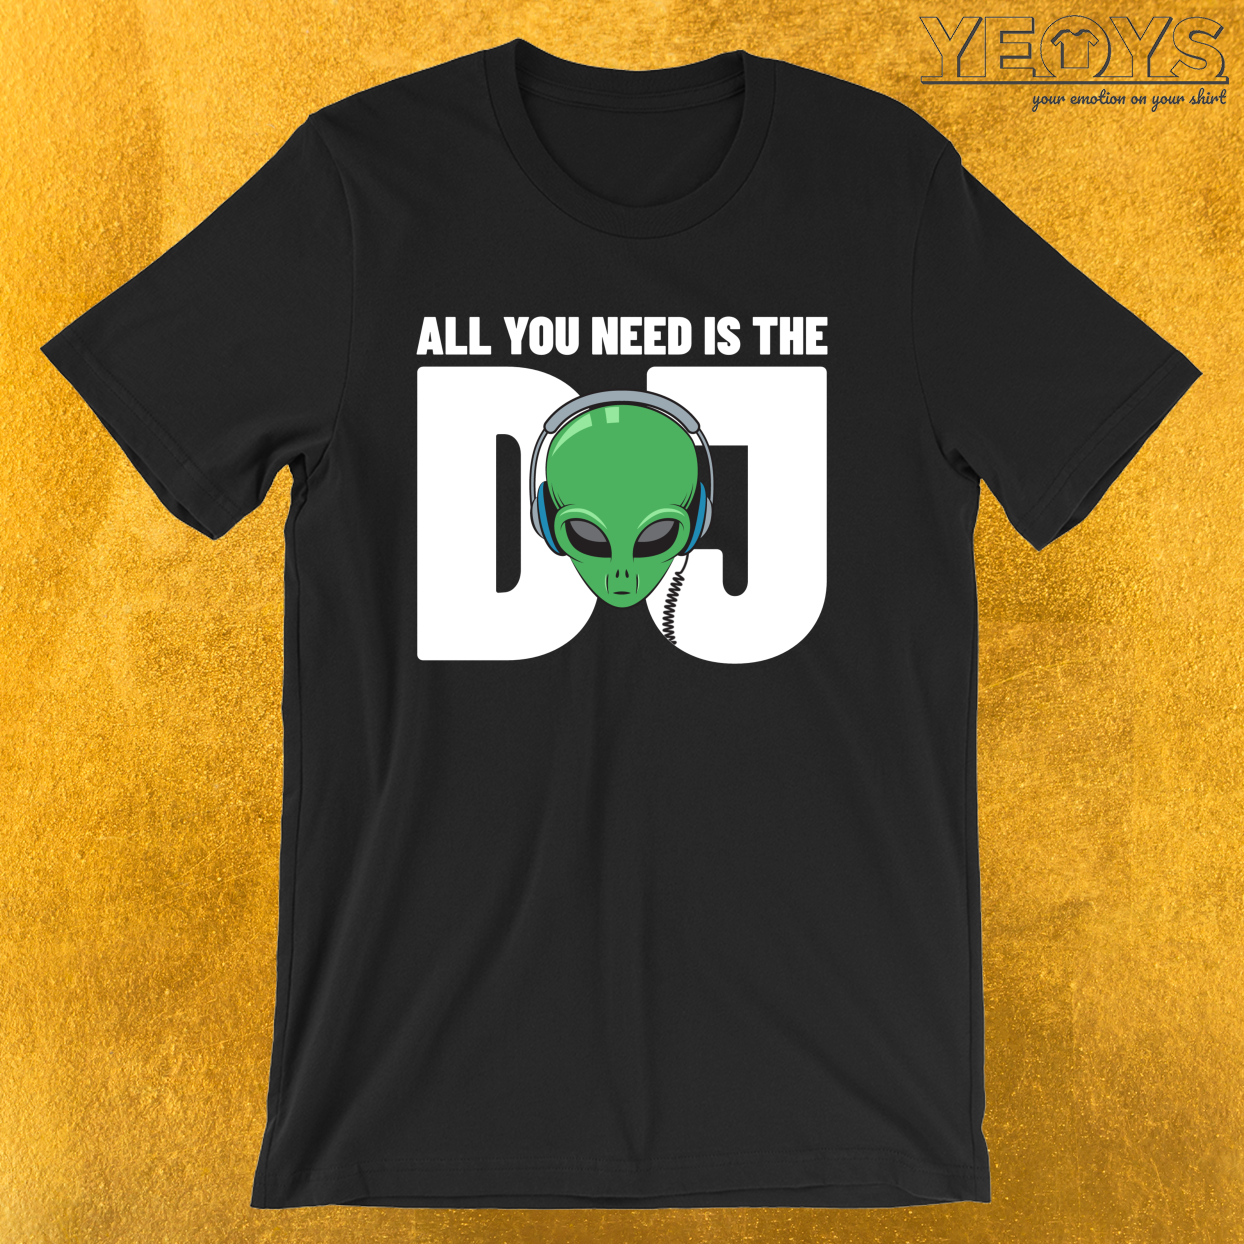 All You Need Is The Dj – Funny Dj Quotes Tee